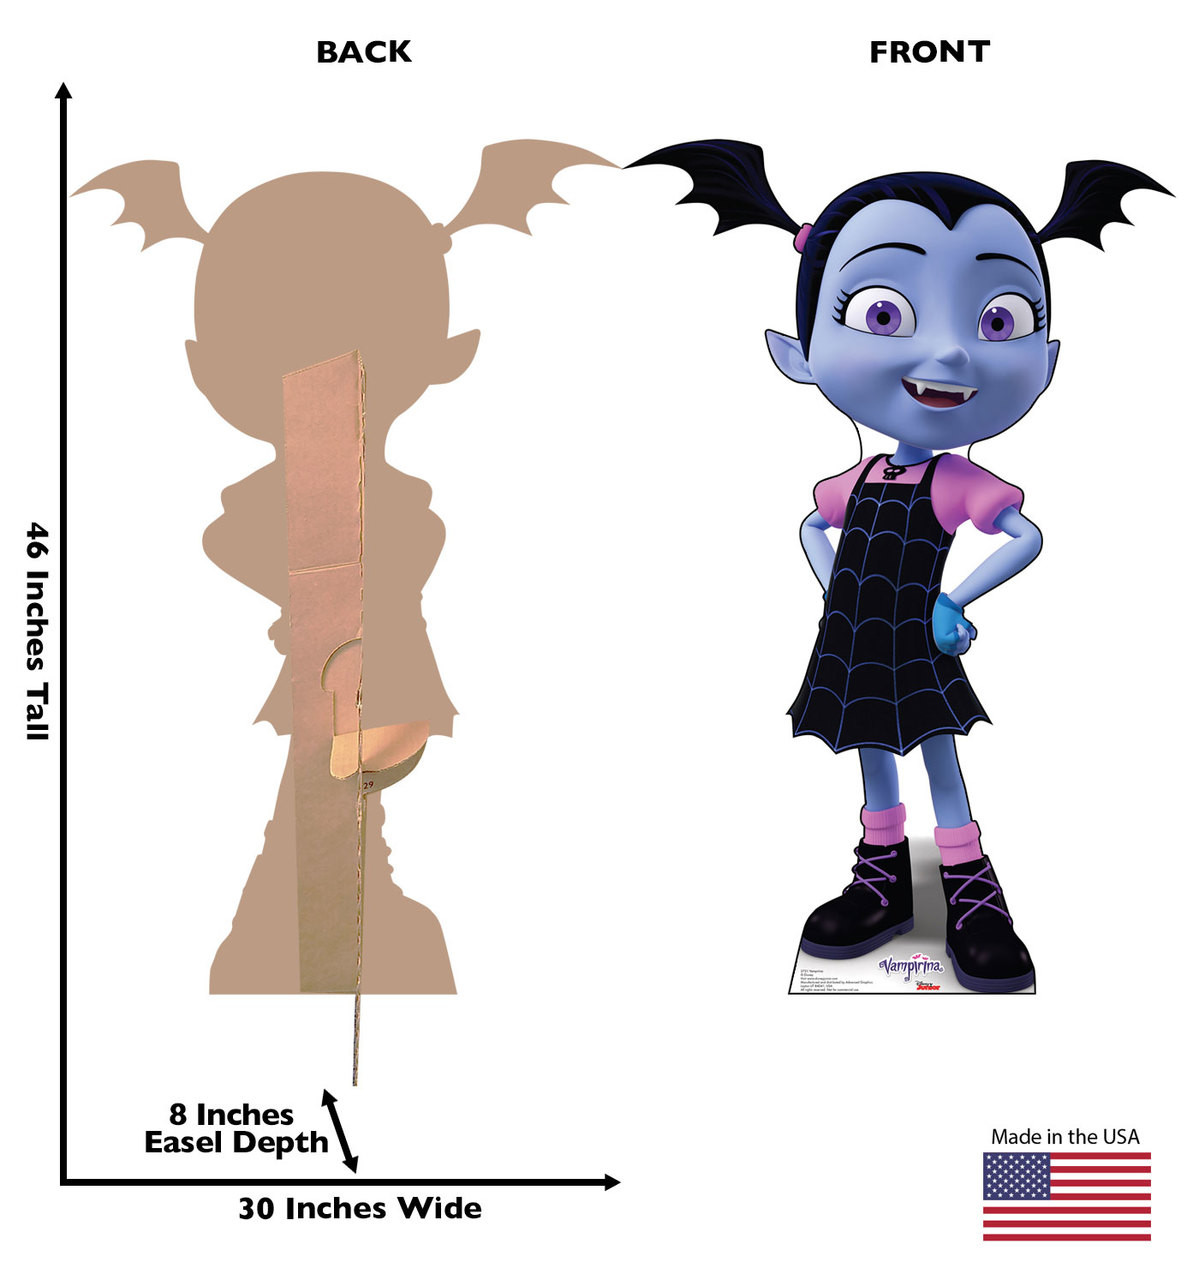 Vampirina Cardboard Cutout Life-size cardboard standee back and front with dimensions.